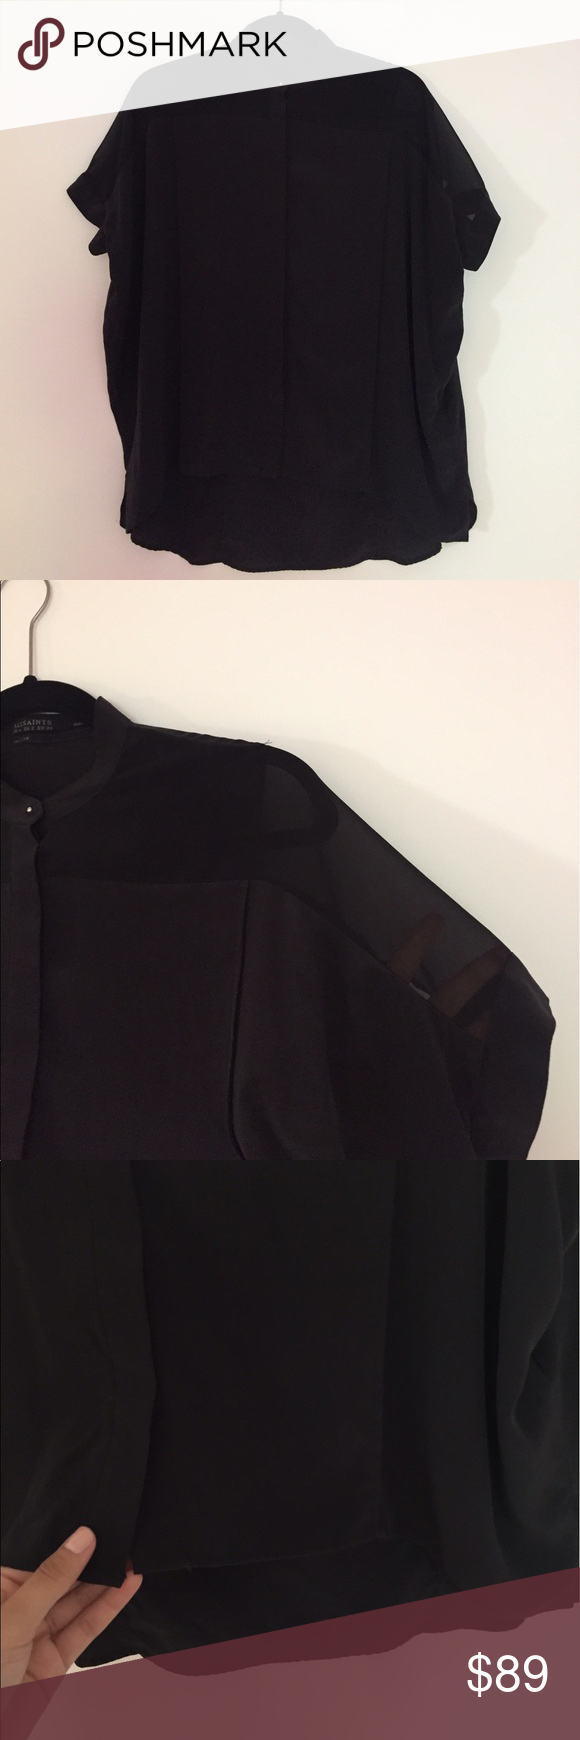 short sleeve black button up silk top short sleeve black button up top from all saints. 100% silk. high low style. top button is silver. top panels are sheer. All Saints Tops Blouses